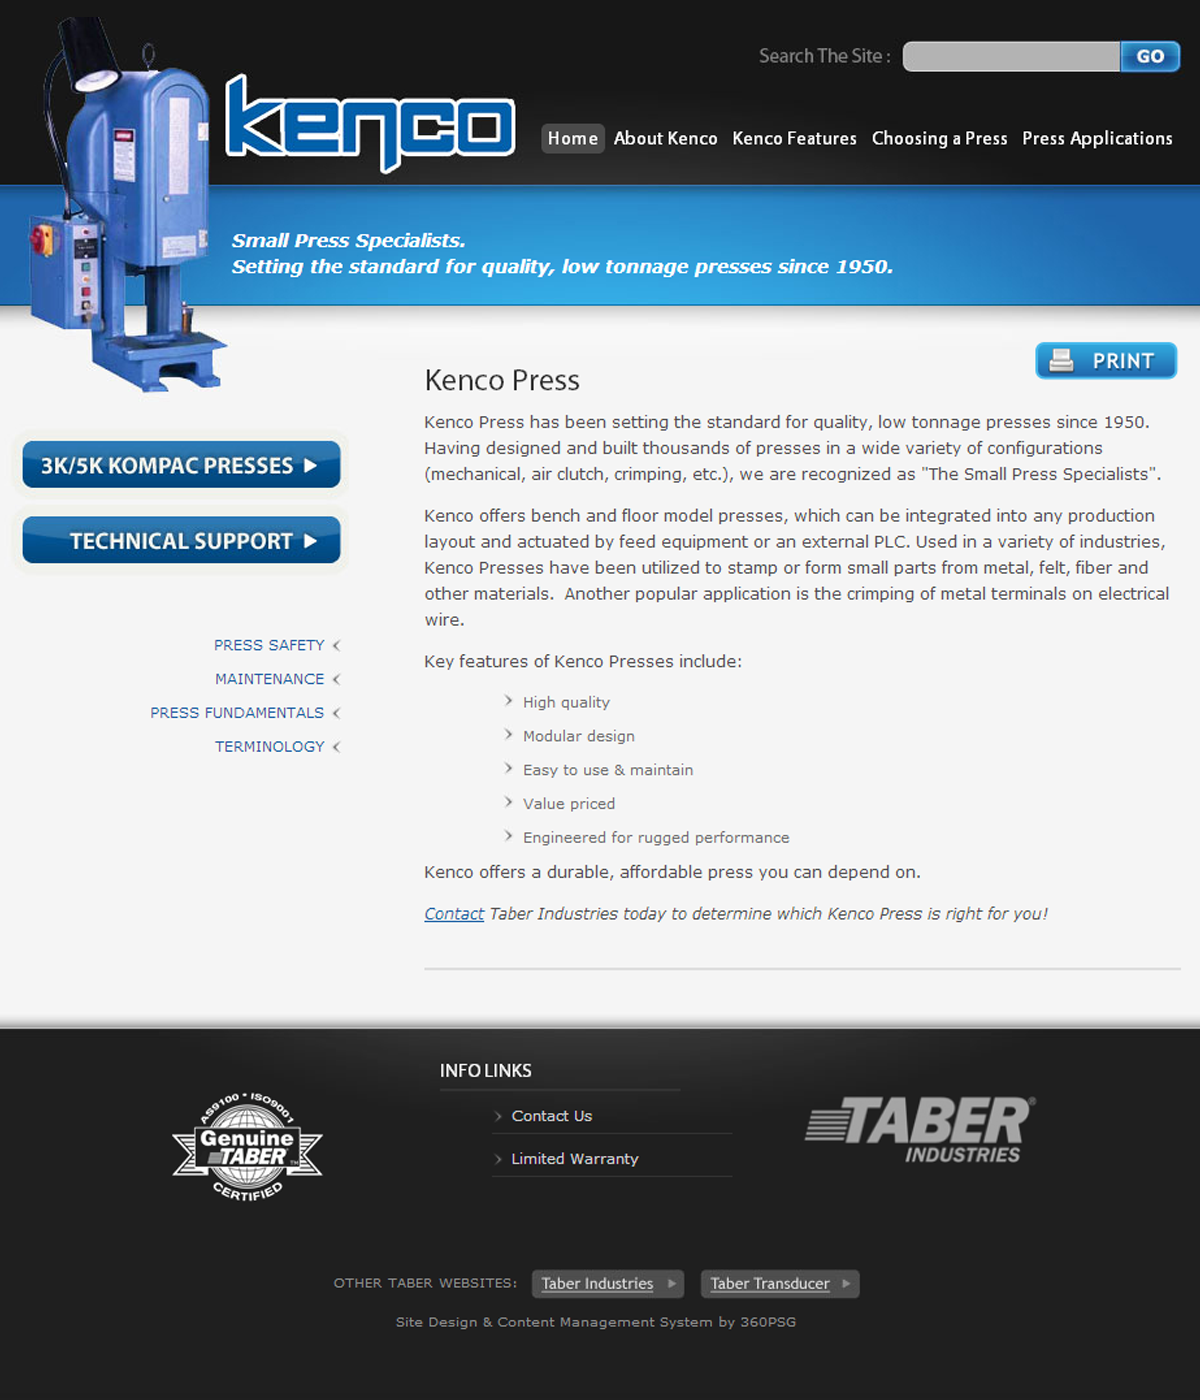 Kenco Press (Taber Industries)